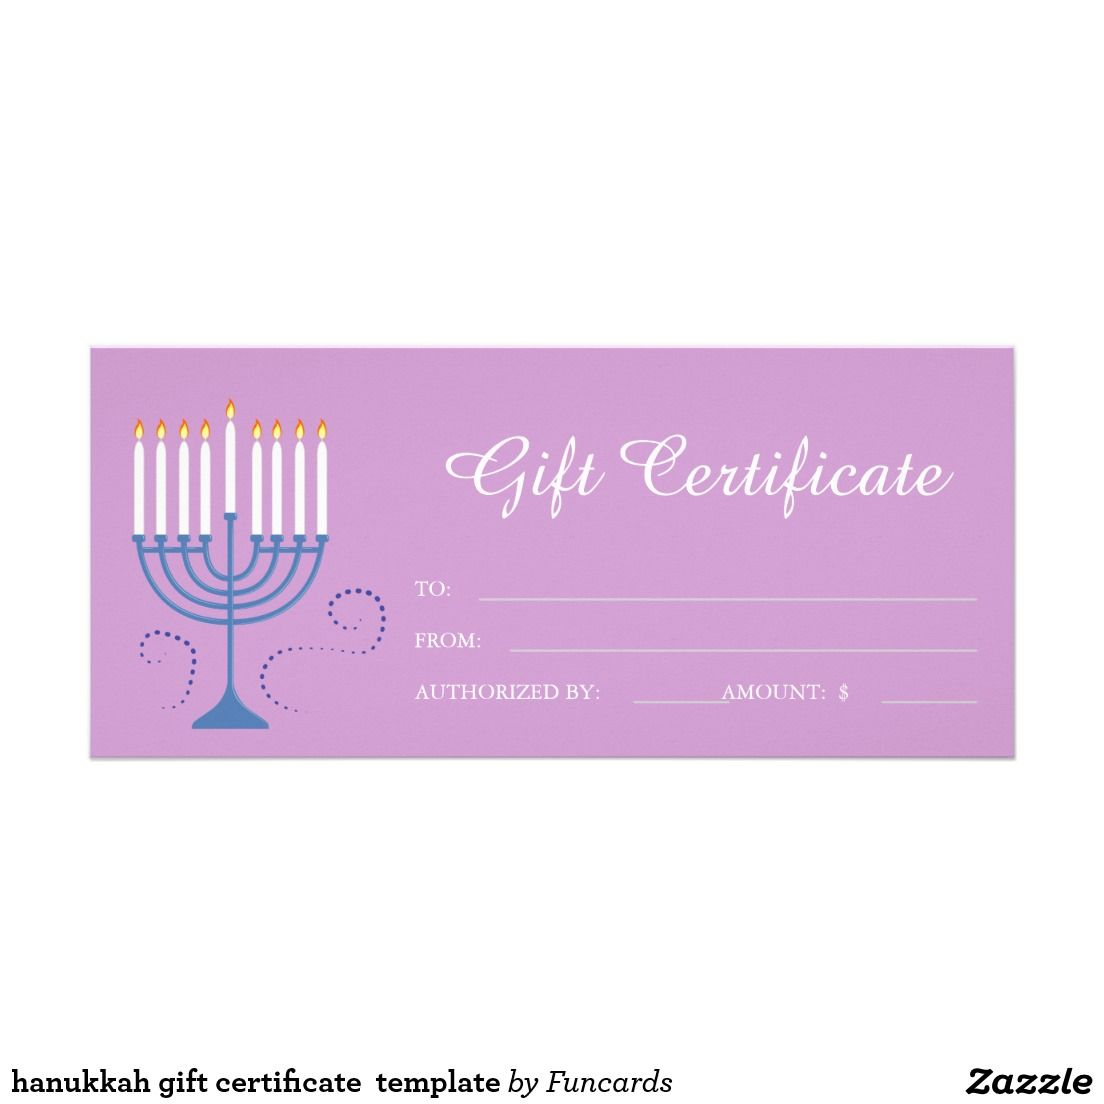 Hanukkah gift certificate template gifts for her pinterest hanukkah gift certificate template xflitez Gallery